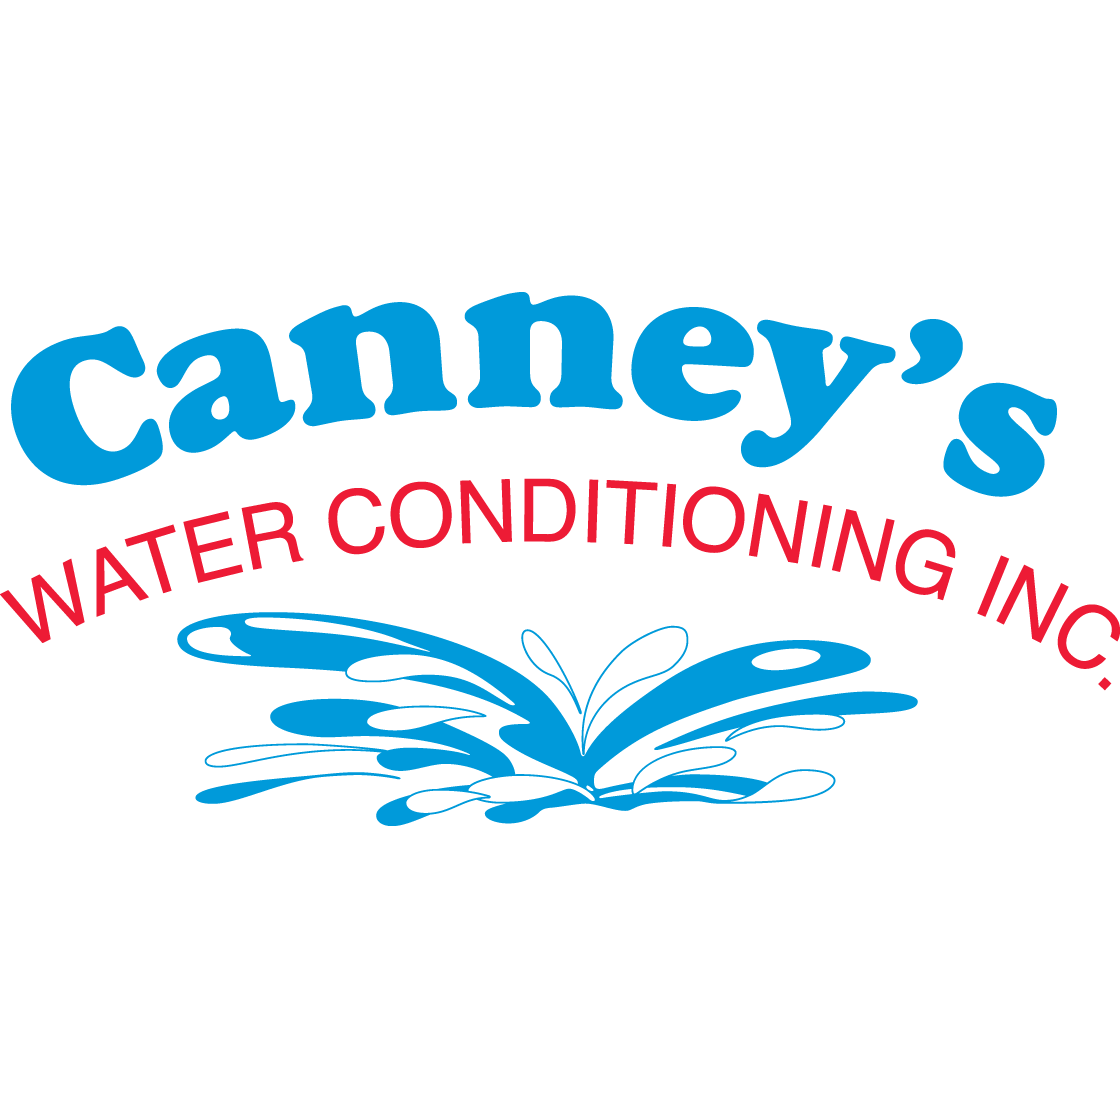 Canney's Water Conditioning image 5